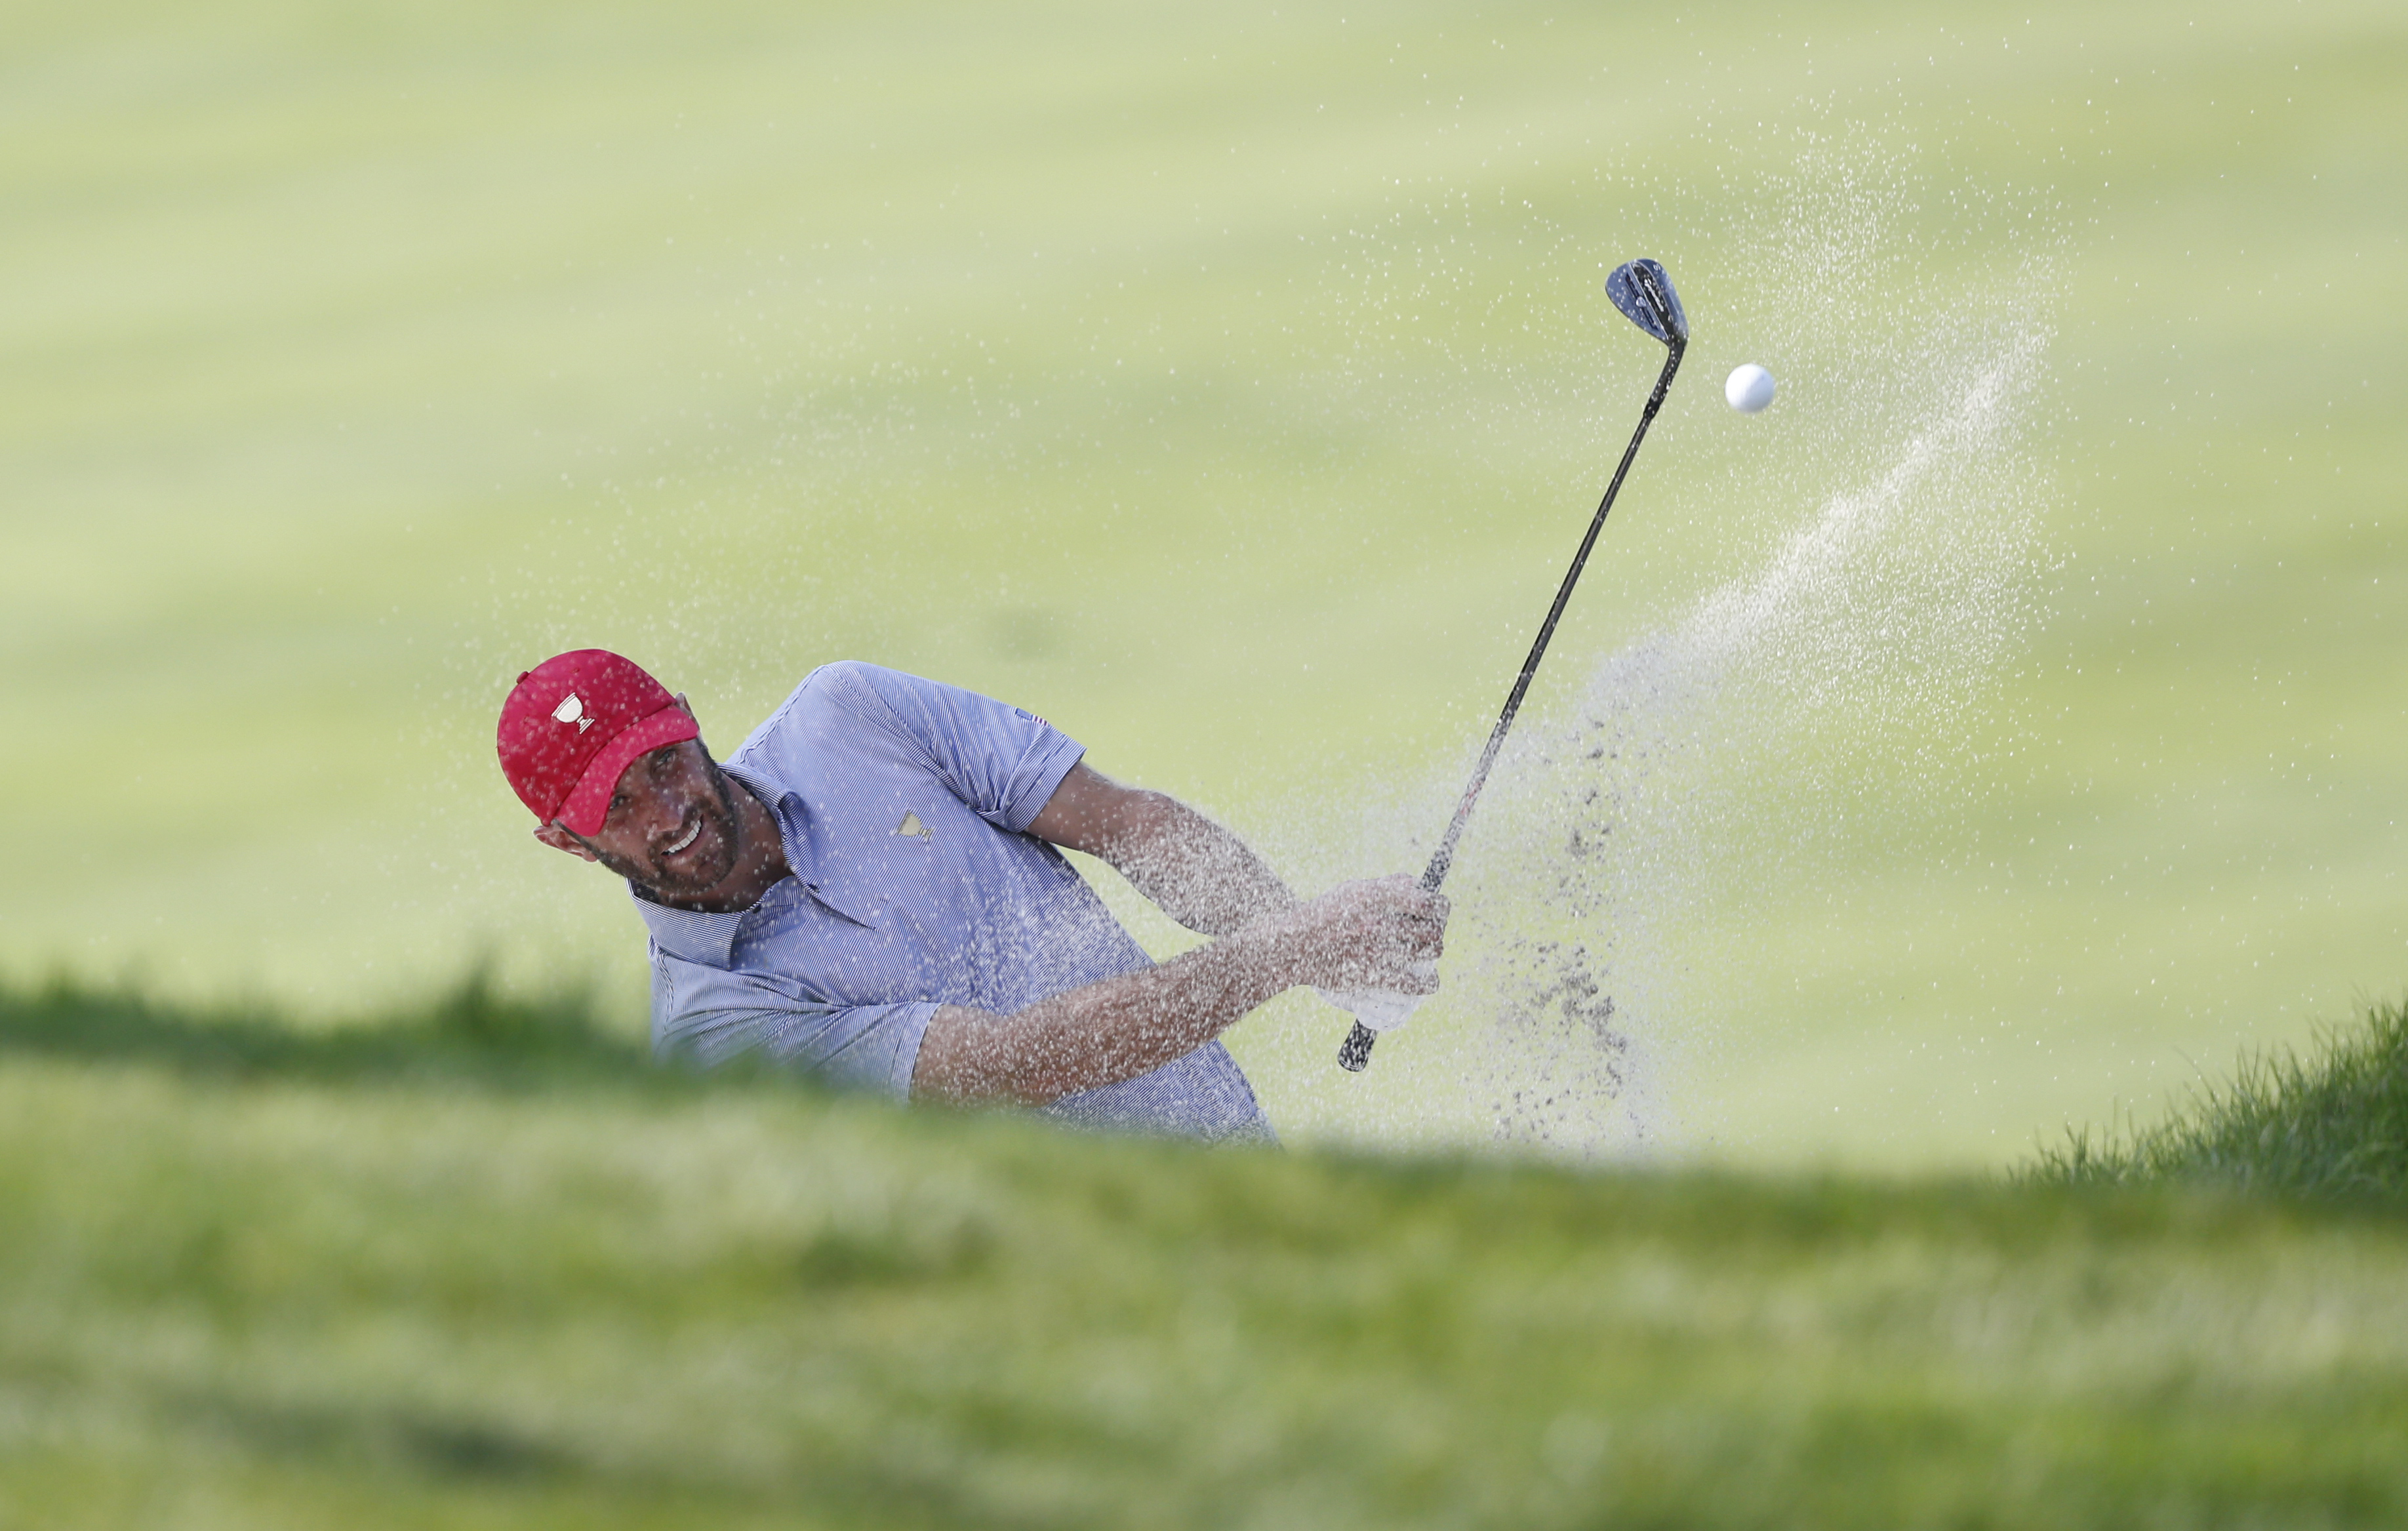 United States team player Dustin Johnson hits from a bunker on the third hole during a practice round ahead of the Presidents Cup golf tournament at Jack Nicklaus Golf Club Korea in Incheon, South Korea, Tuesday, Oct. 6, 2015. (AP Photo/Lee